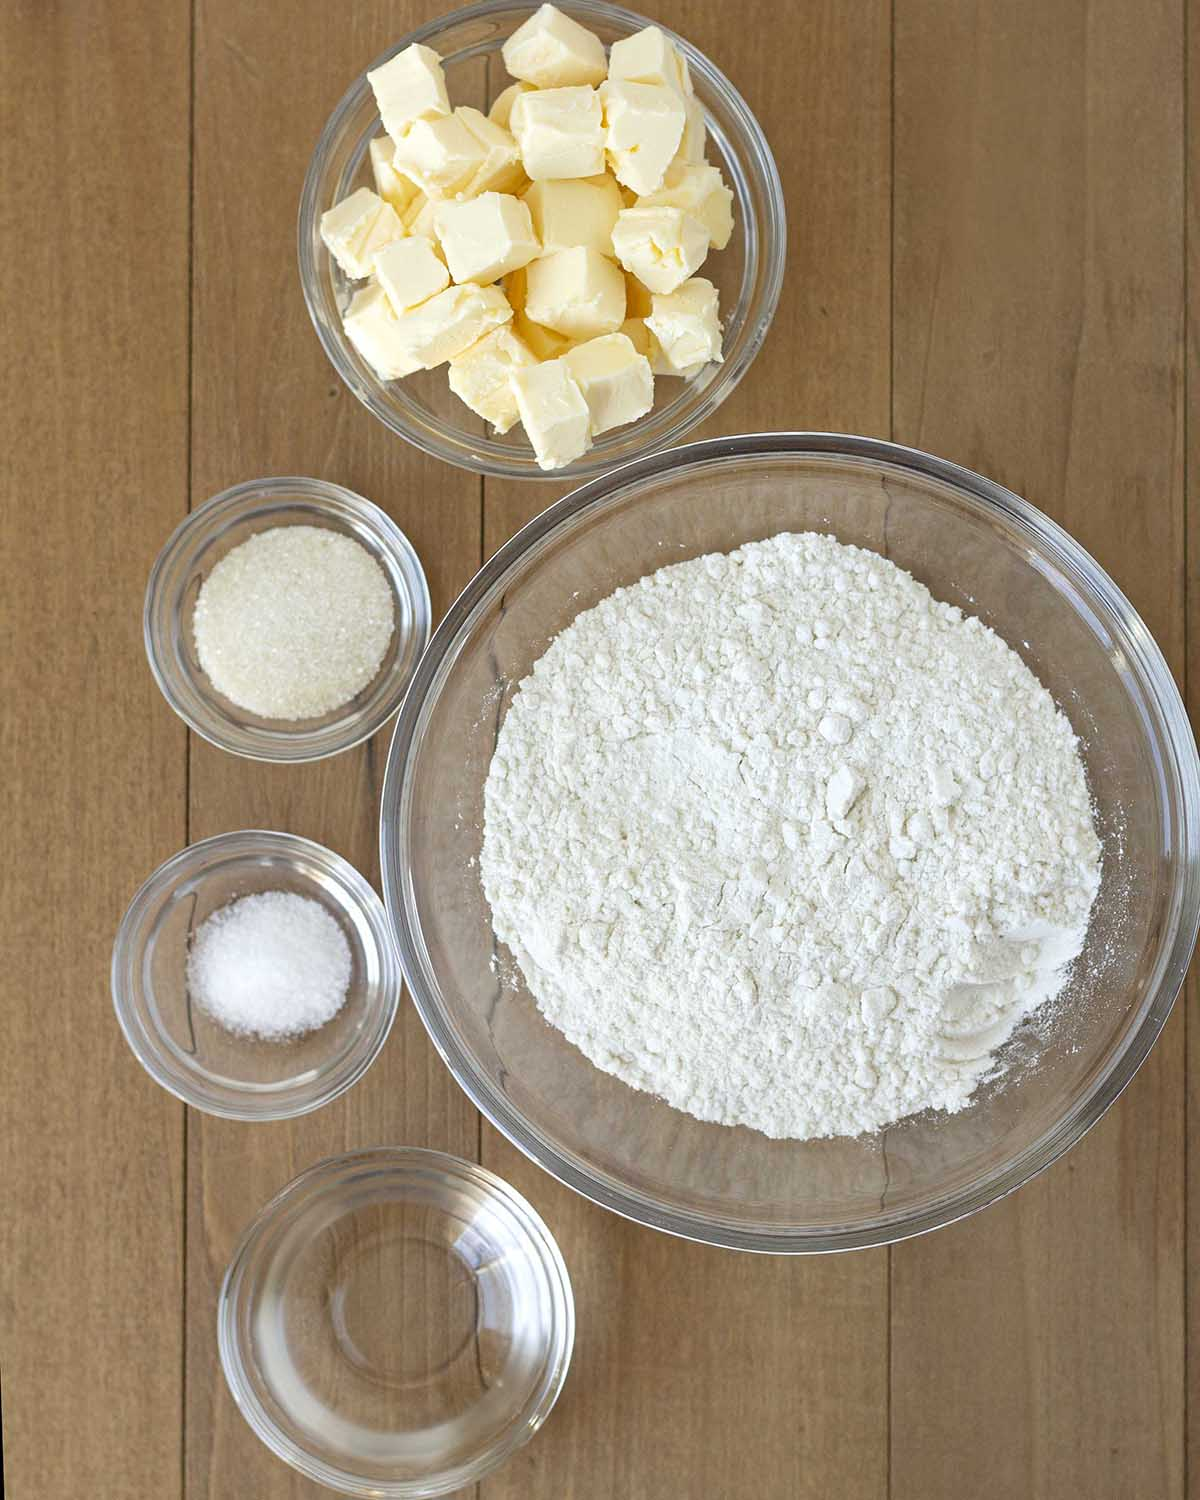 Overhead shot of the ingredients needed to make a vegan gluten free crust.